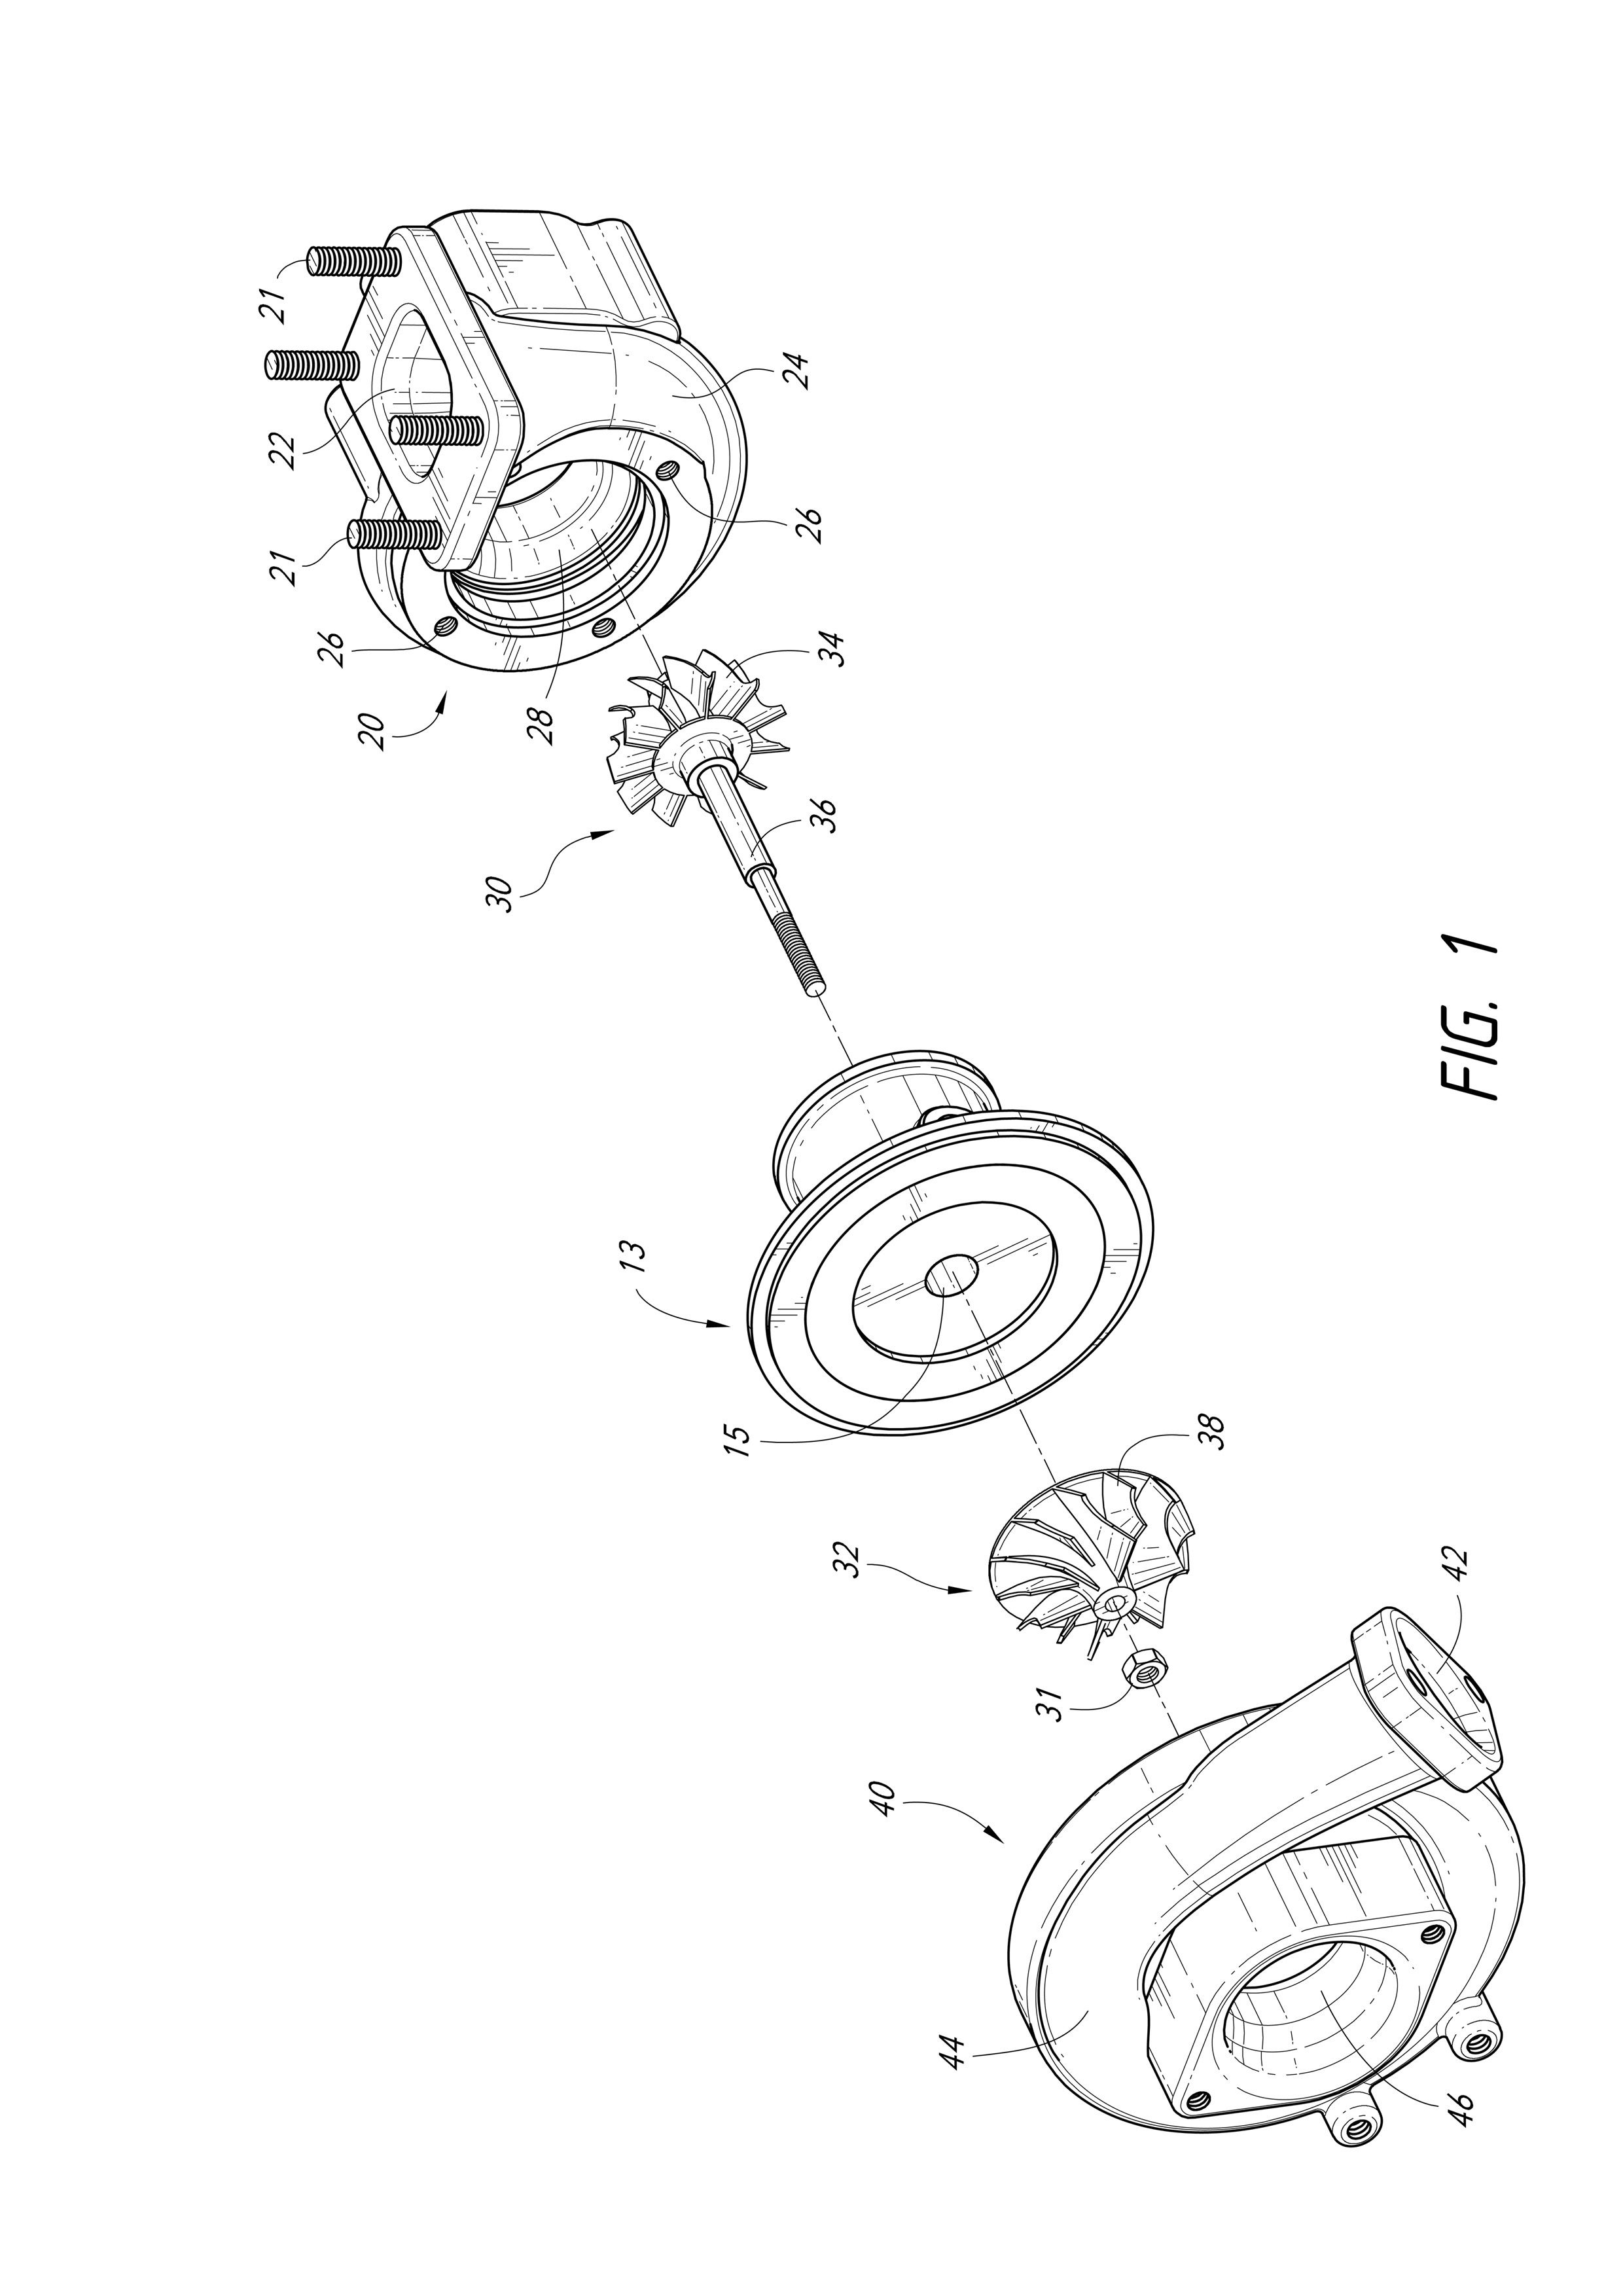 medium resolution of exploded view of a turbo charger